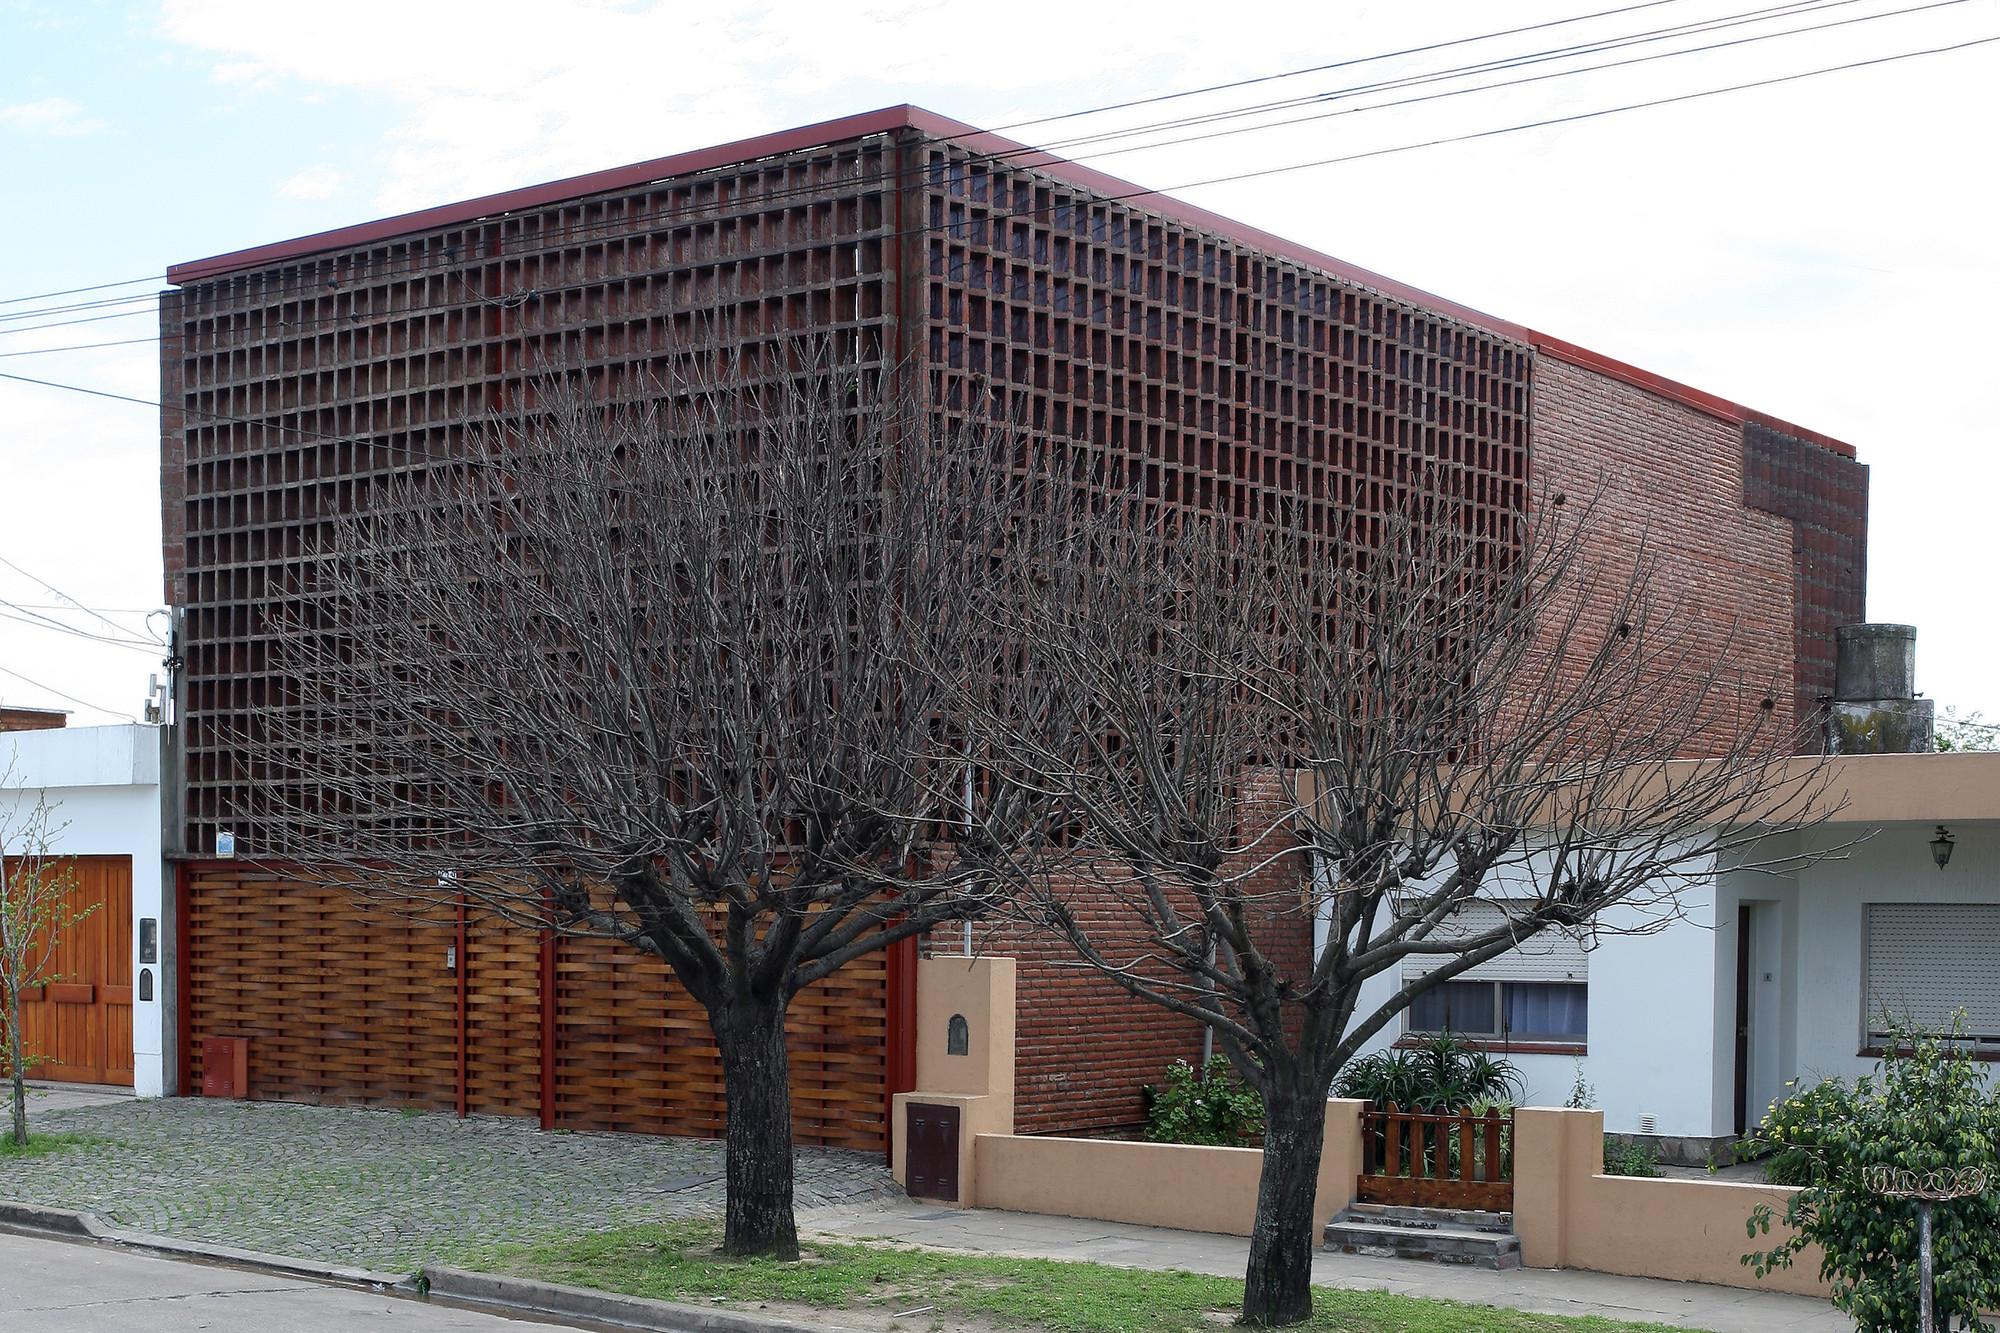 House of Sieves / Francisco Cadau, © Gustavo Sosa Pinilla